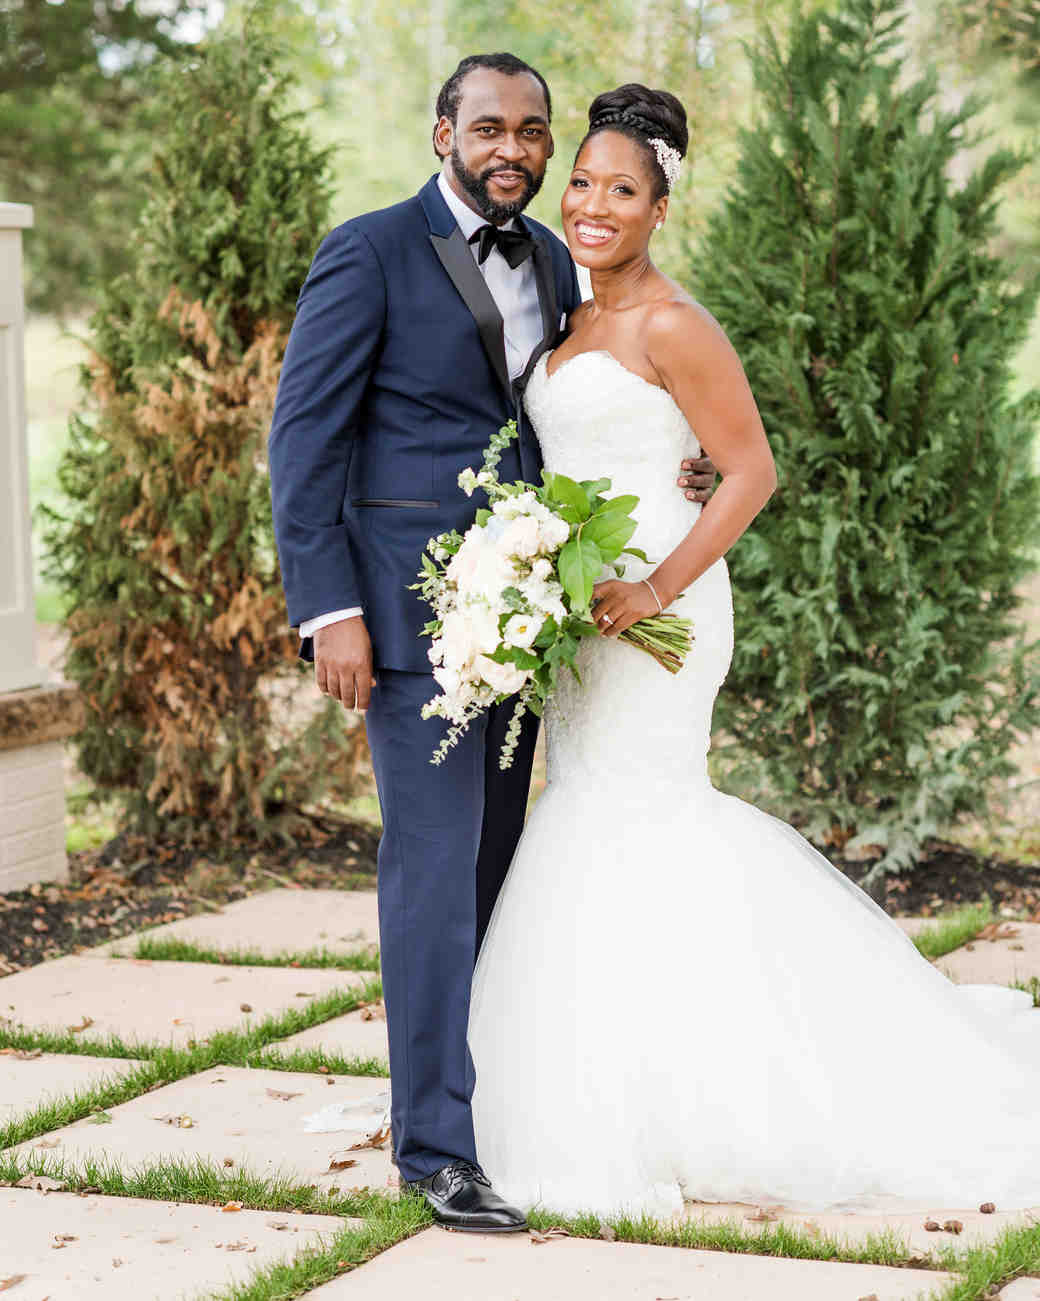 kenisha wendall wedding portrait couple posing